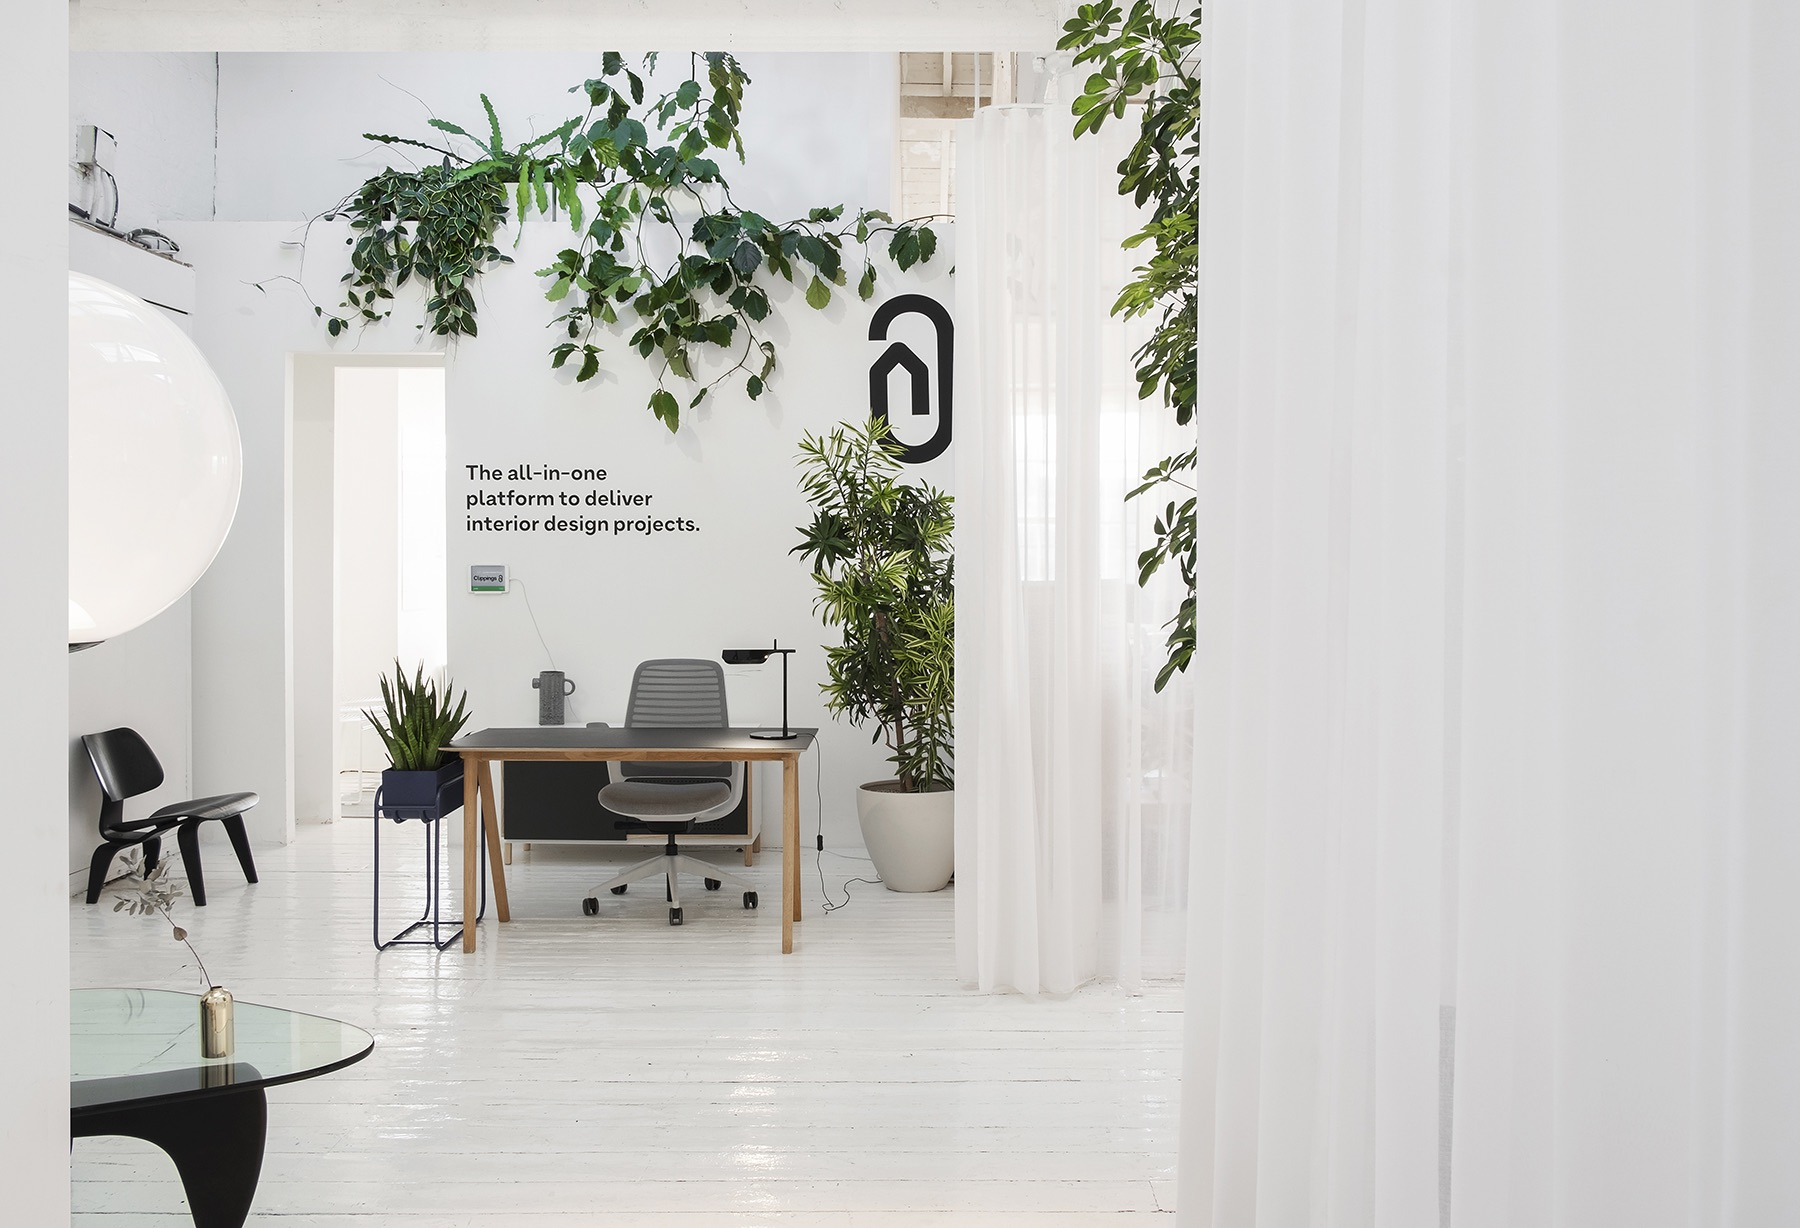 A Look Inside Clippings' Biophilic London Office